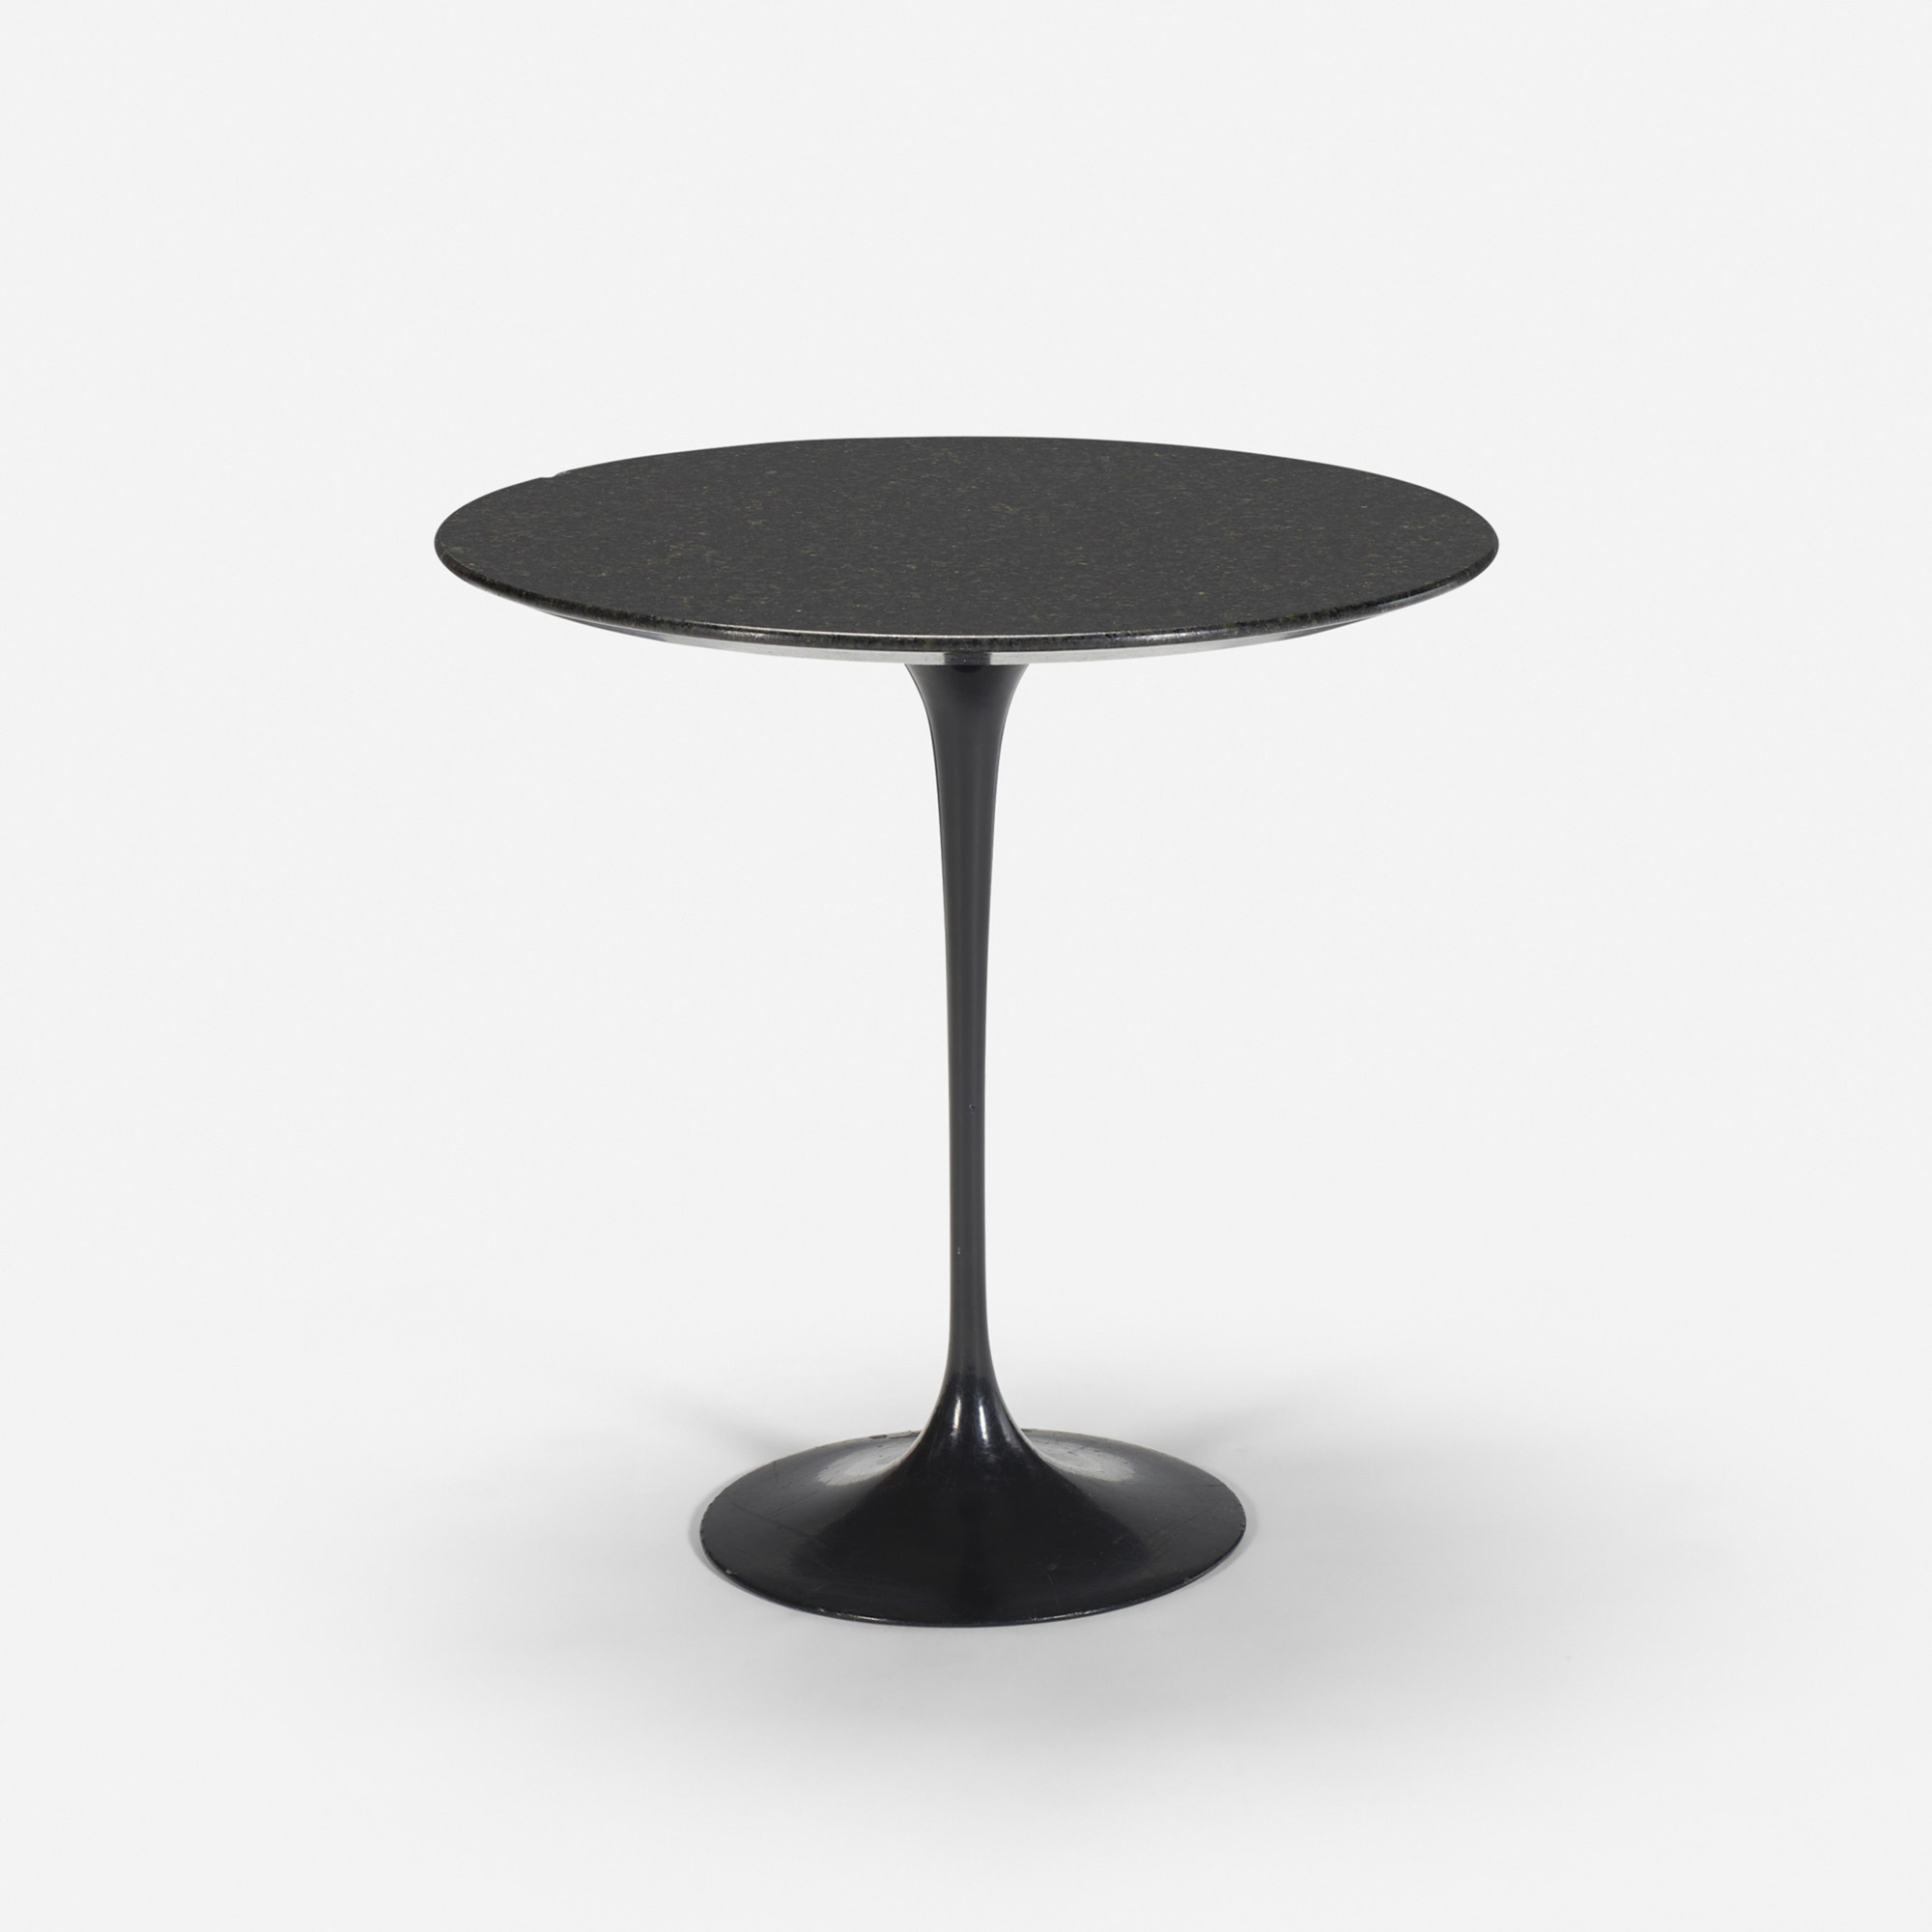 113: Eero Saarinen / Tulip table from the Grill Room (1 of 1)